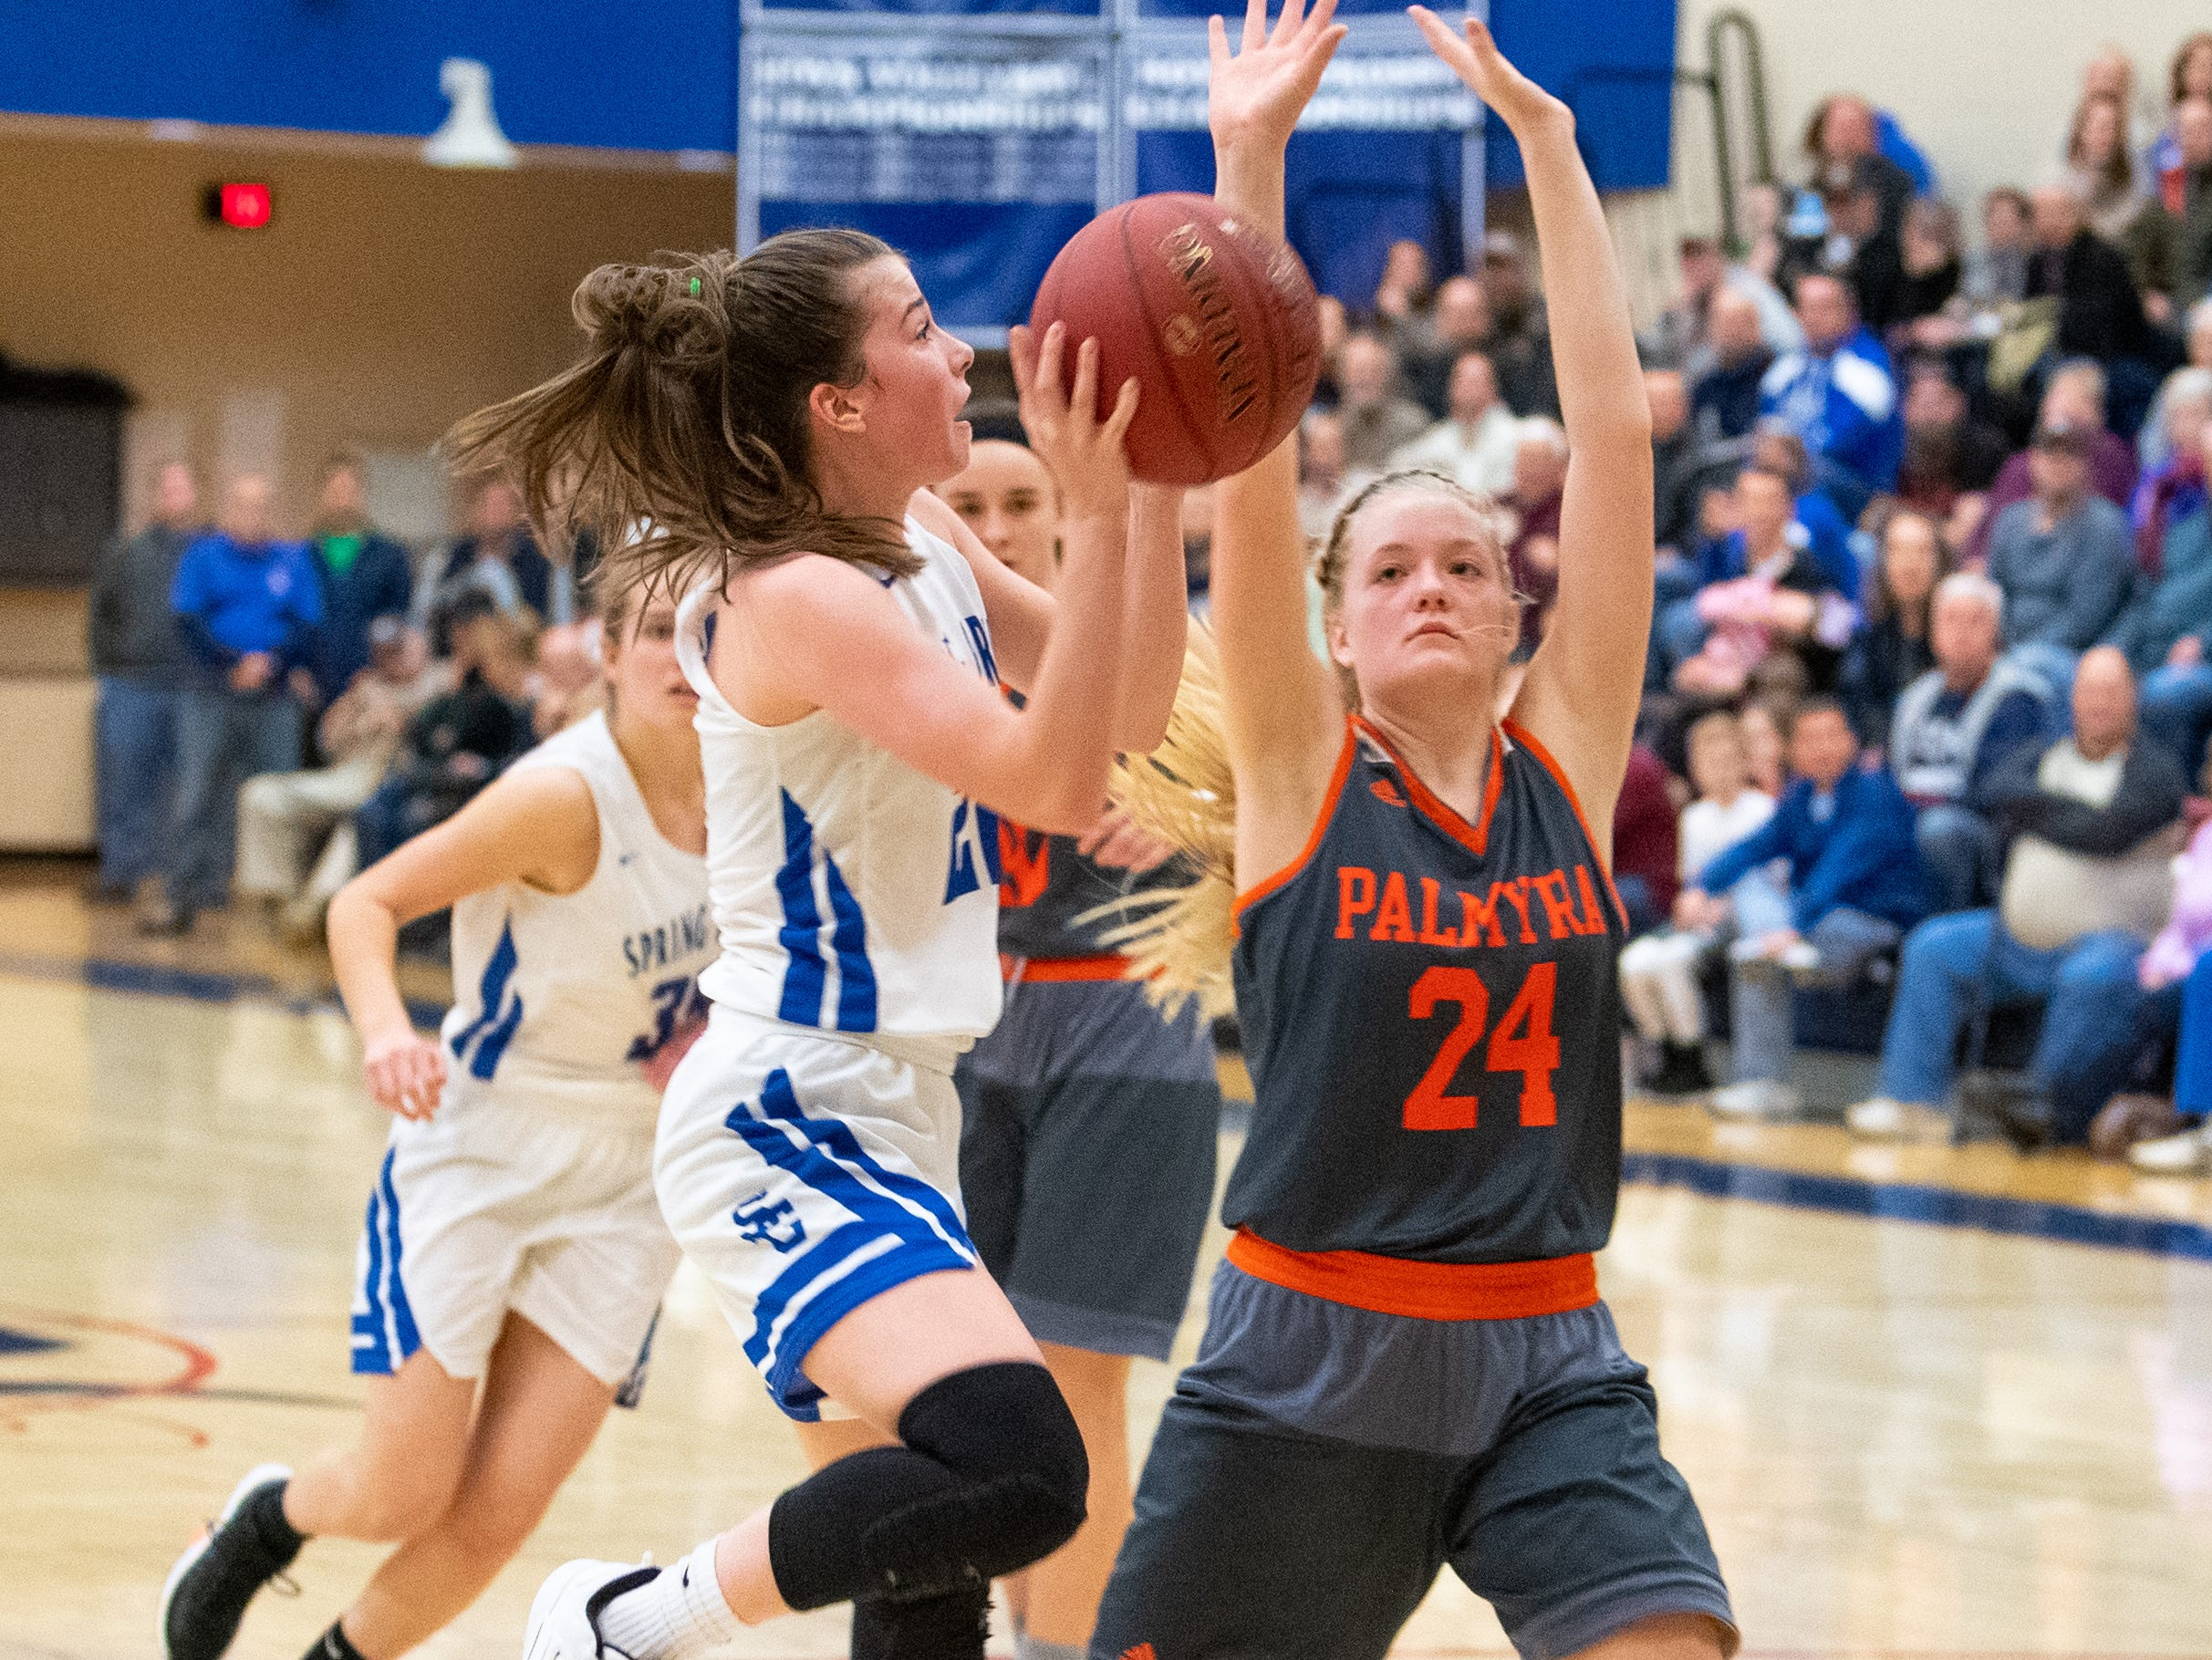 Ella Kale (22) takes the contested shot during the District 3 Class 5A girls' basketball quarterfinal between Spring Grove and Palmyra, Friday, February 22, 2019 at Spring Grove Area High School. The Cougars defeated the Rockets 43 to 41.